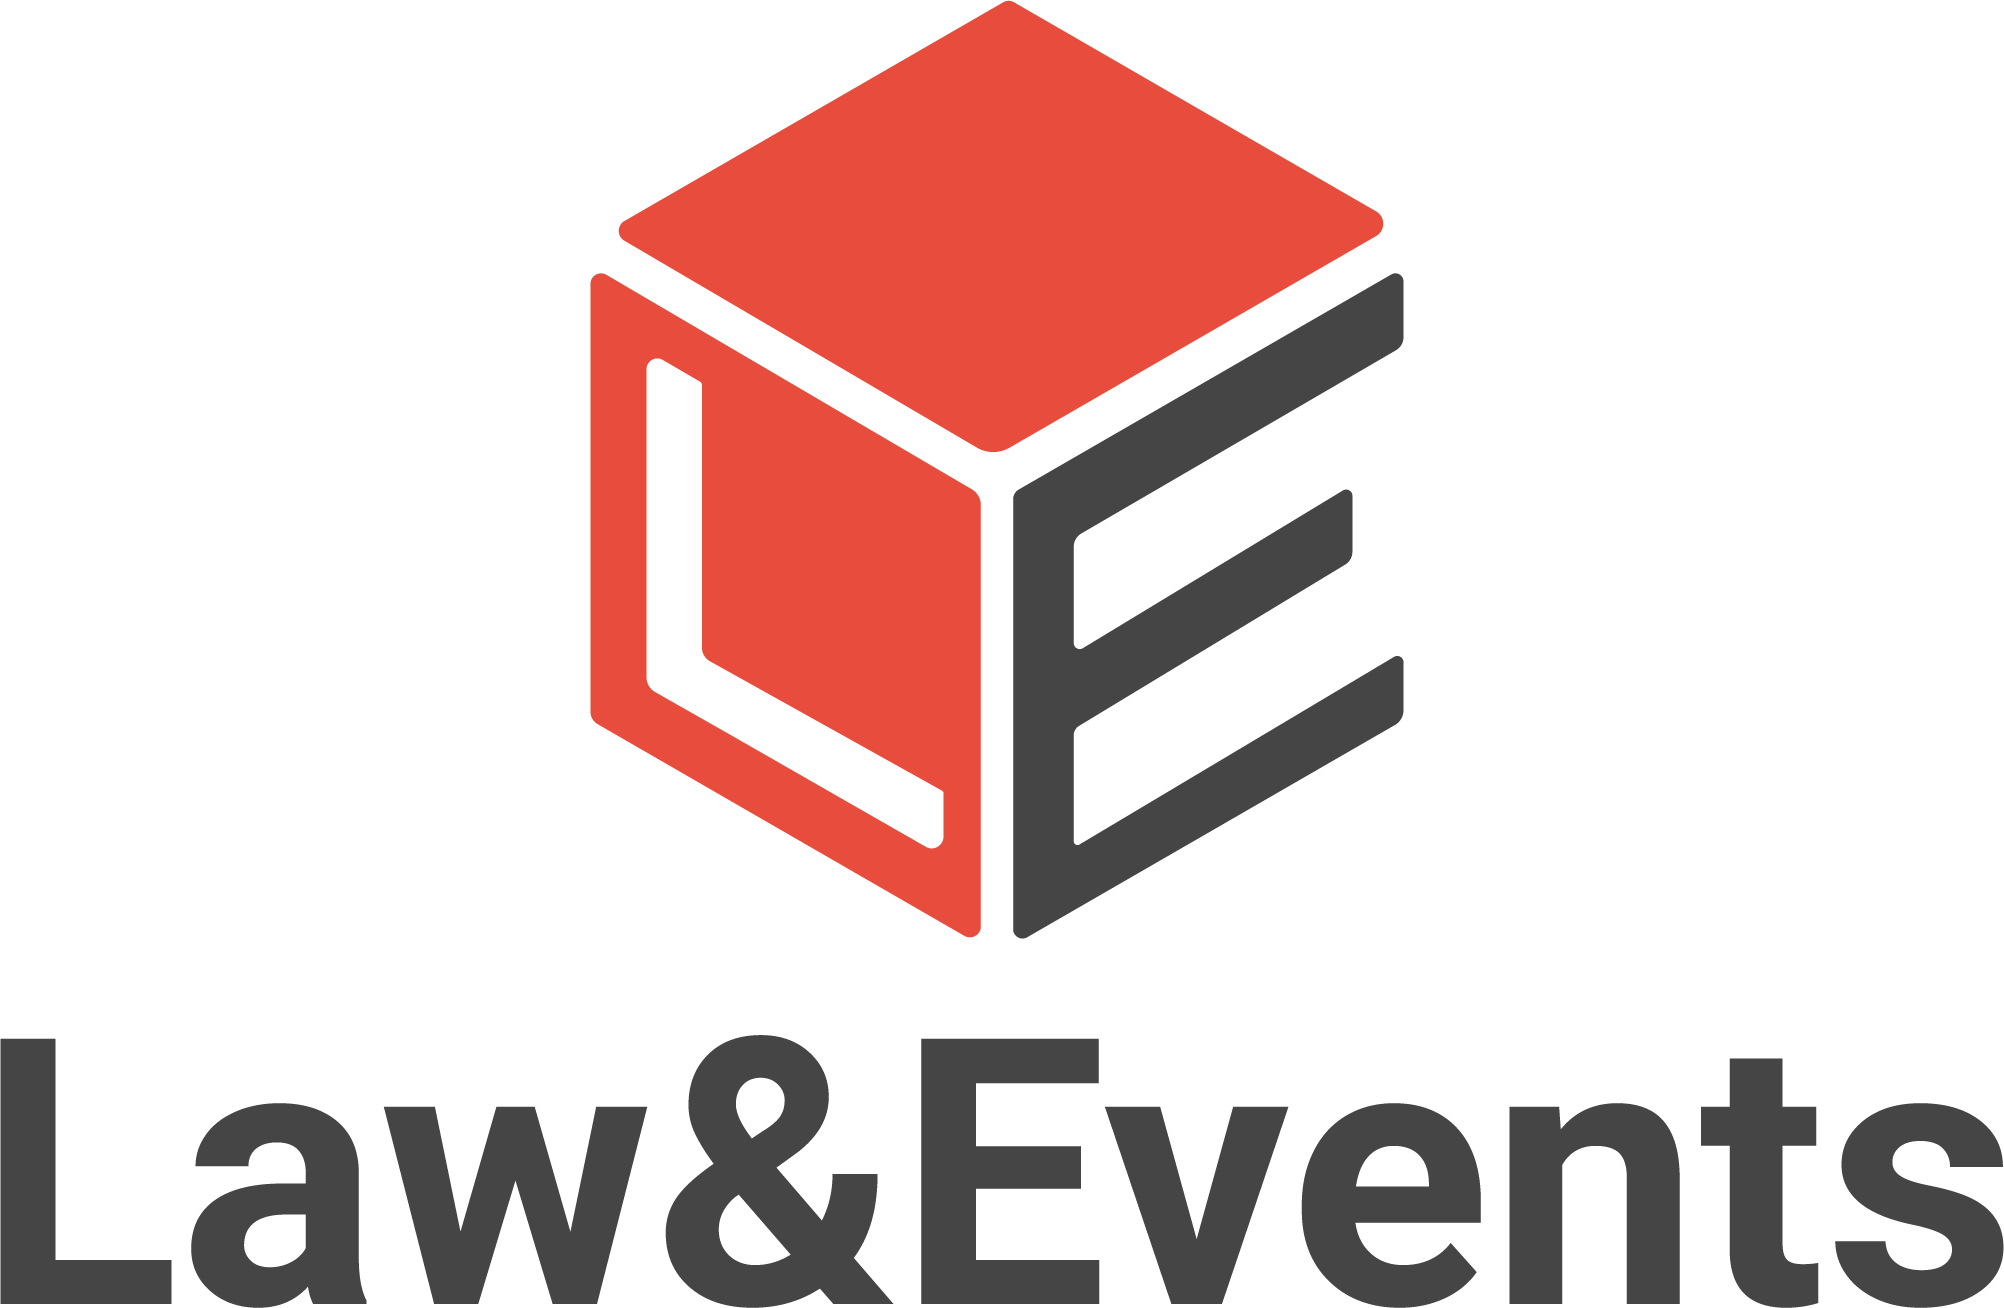 LawEvents